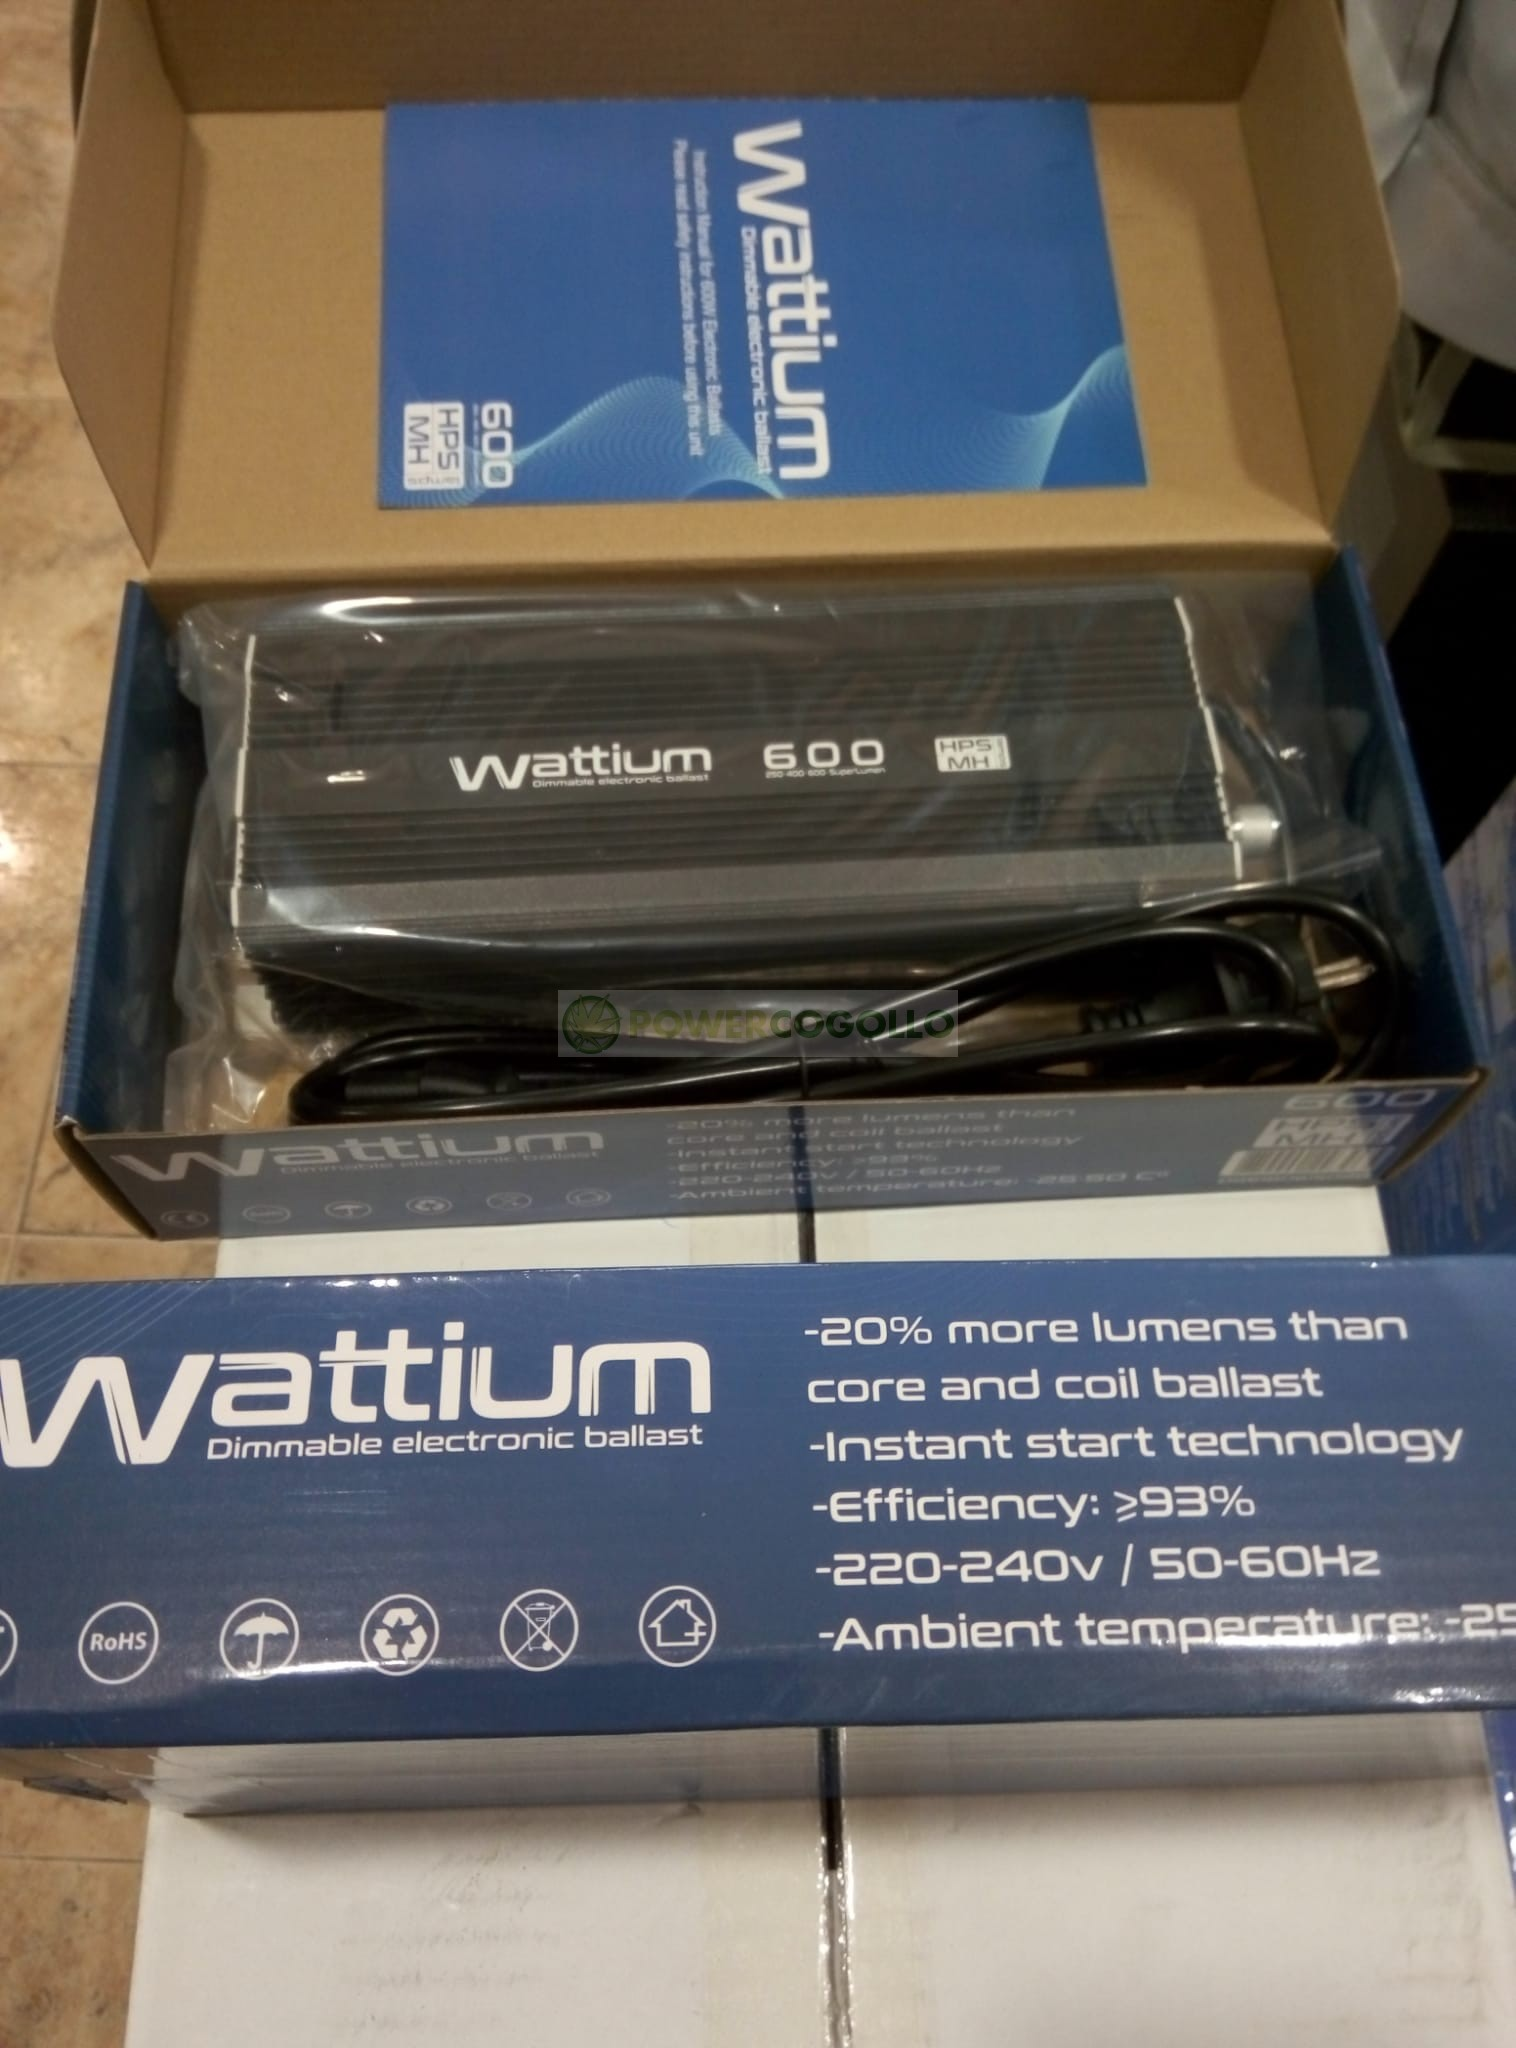 KIT 600W WATTIUM ELECTRONICO REGULABLE 2